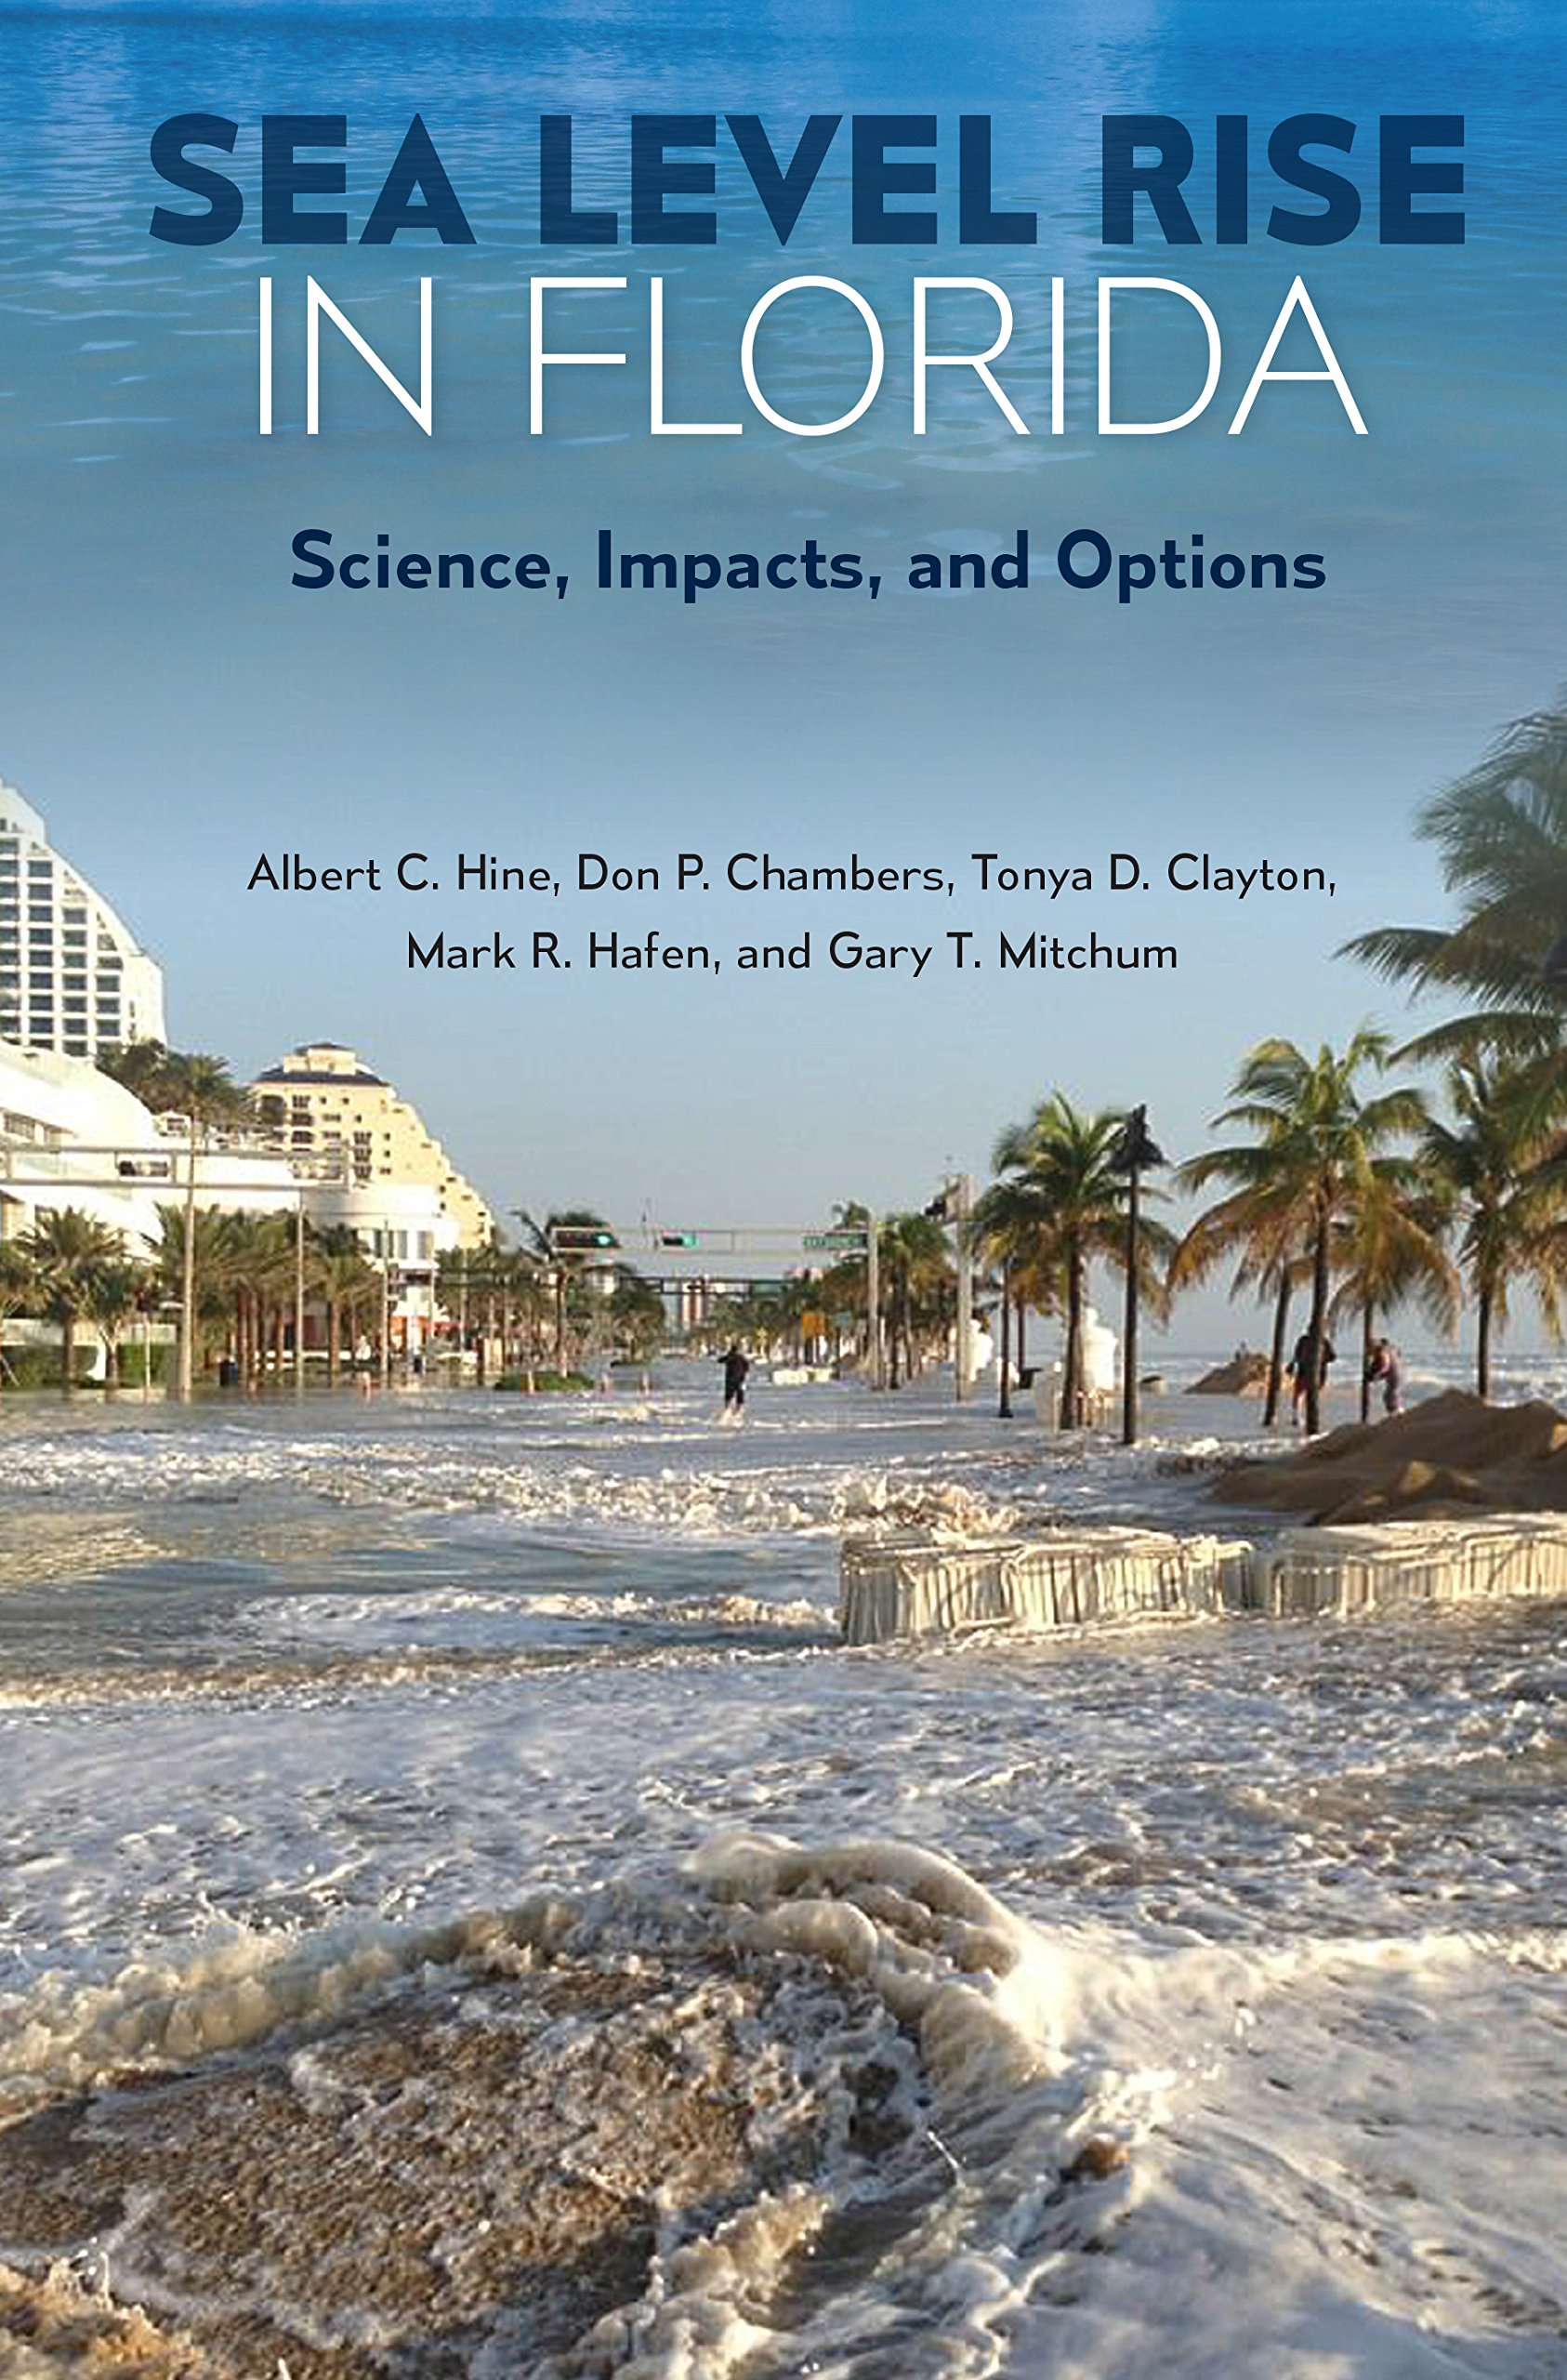 amazon sea level rise in florida science impacts and options